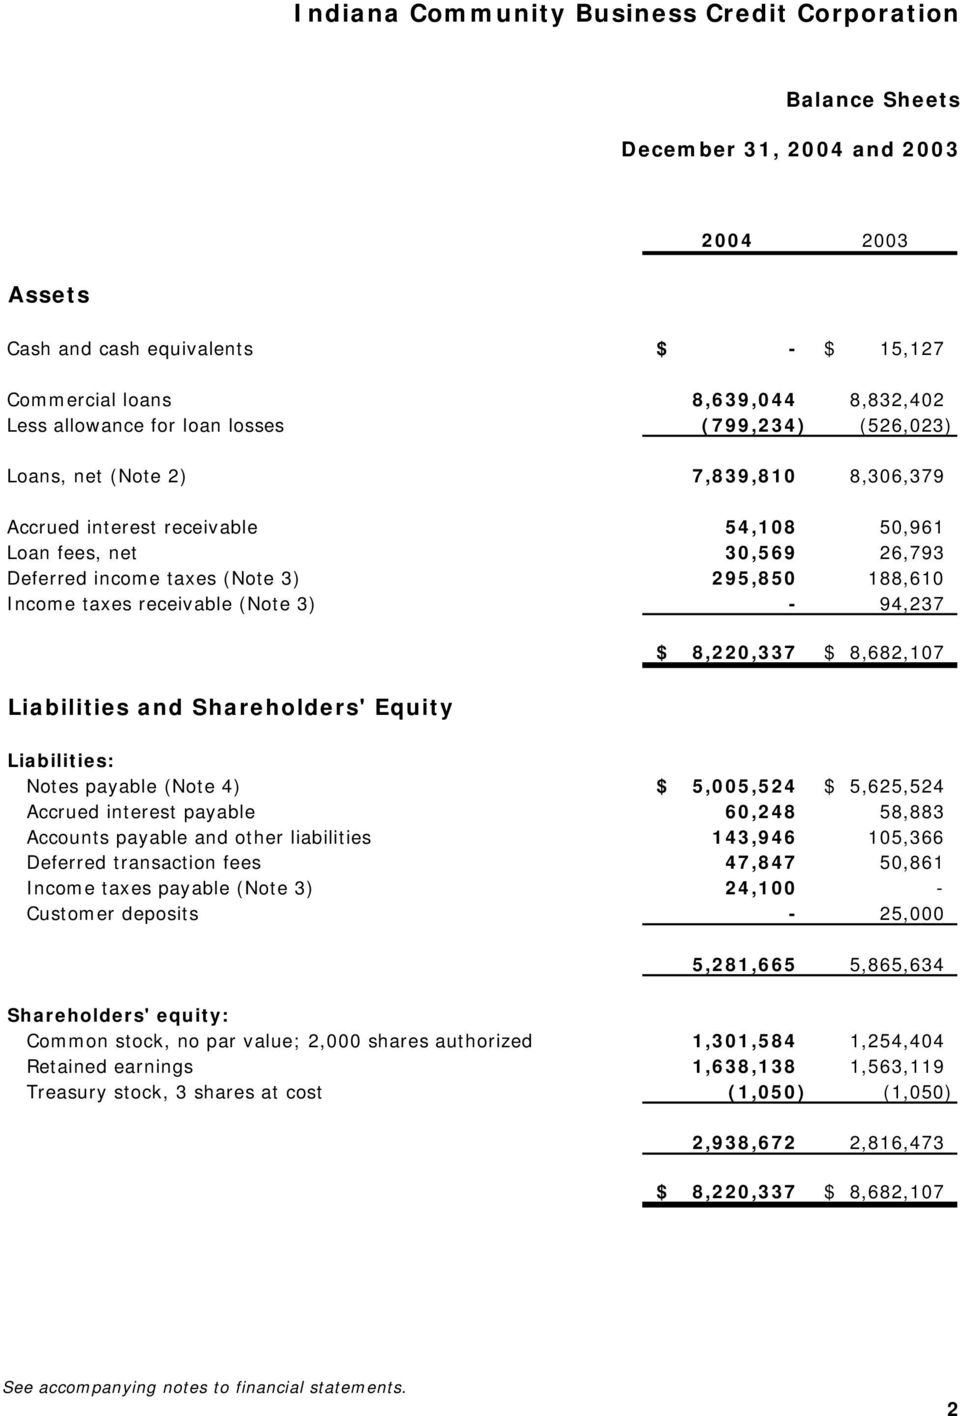 8,682,107 Liabilities and Shareholders' Equity Liabilities: Notes payable (Note 4) $ 5,005,524 $ 5,625,524 Accrued interest payable 60,248 58,883 Accounts payable and other liabilities 143,946